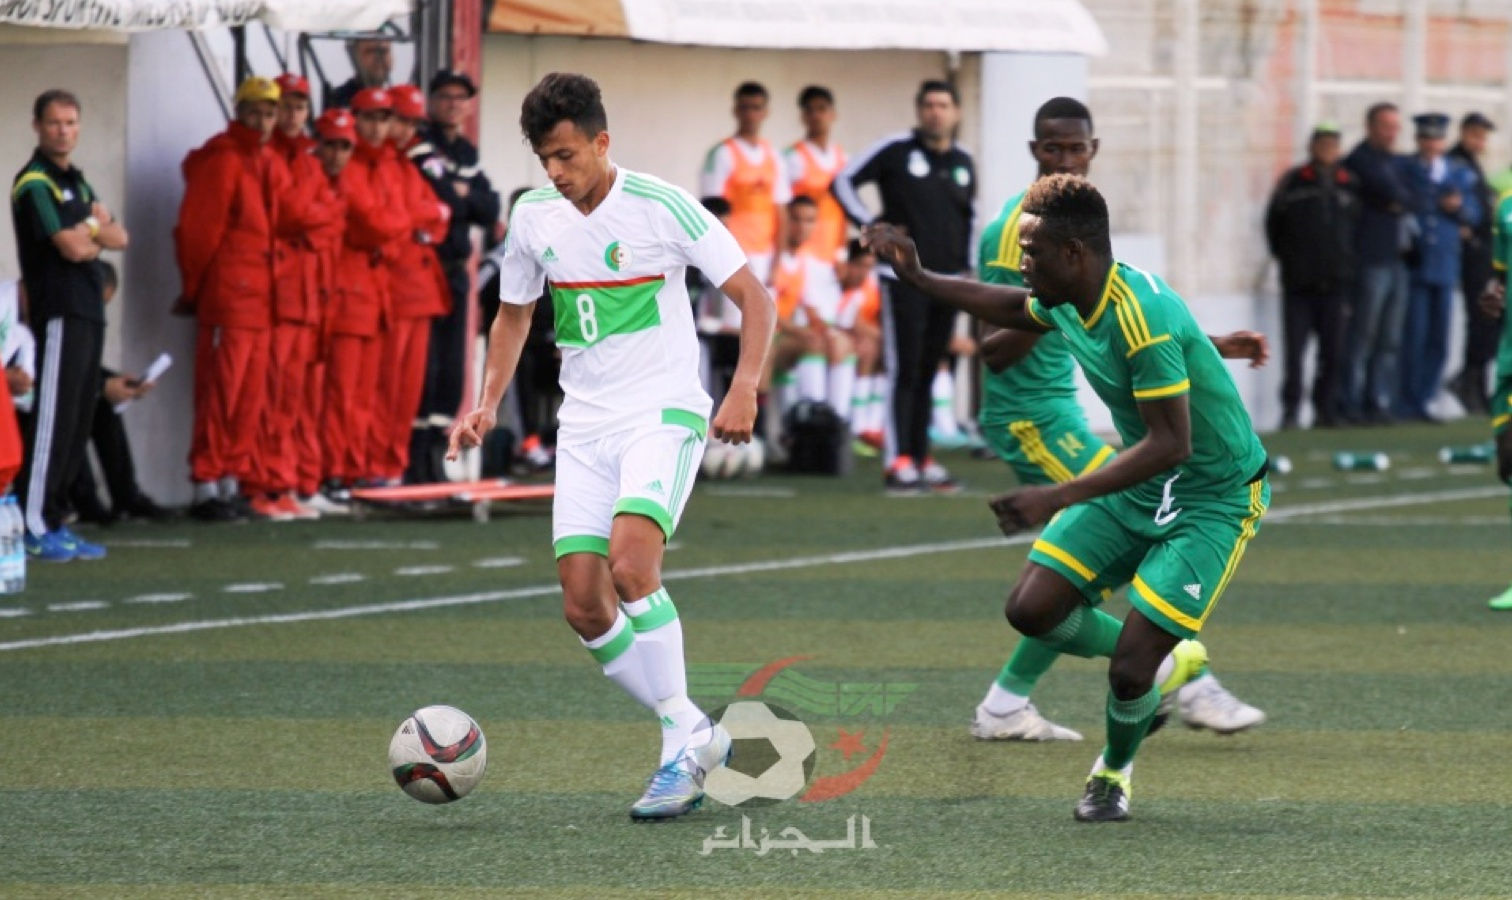 U20 action bologhine contre mauritanie